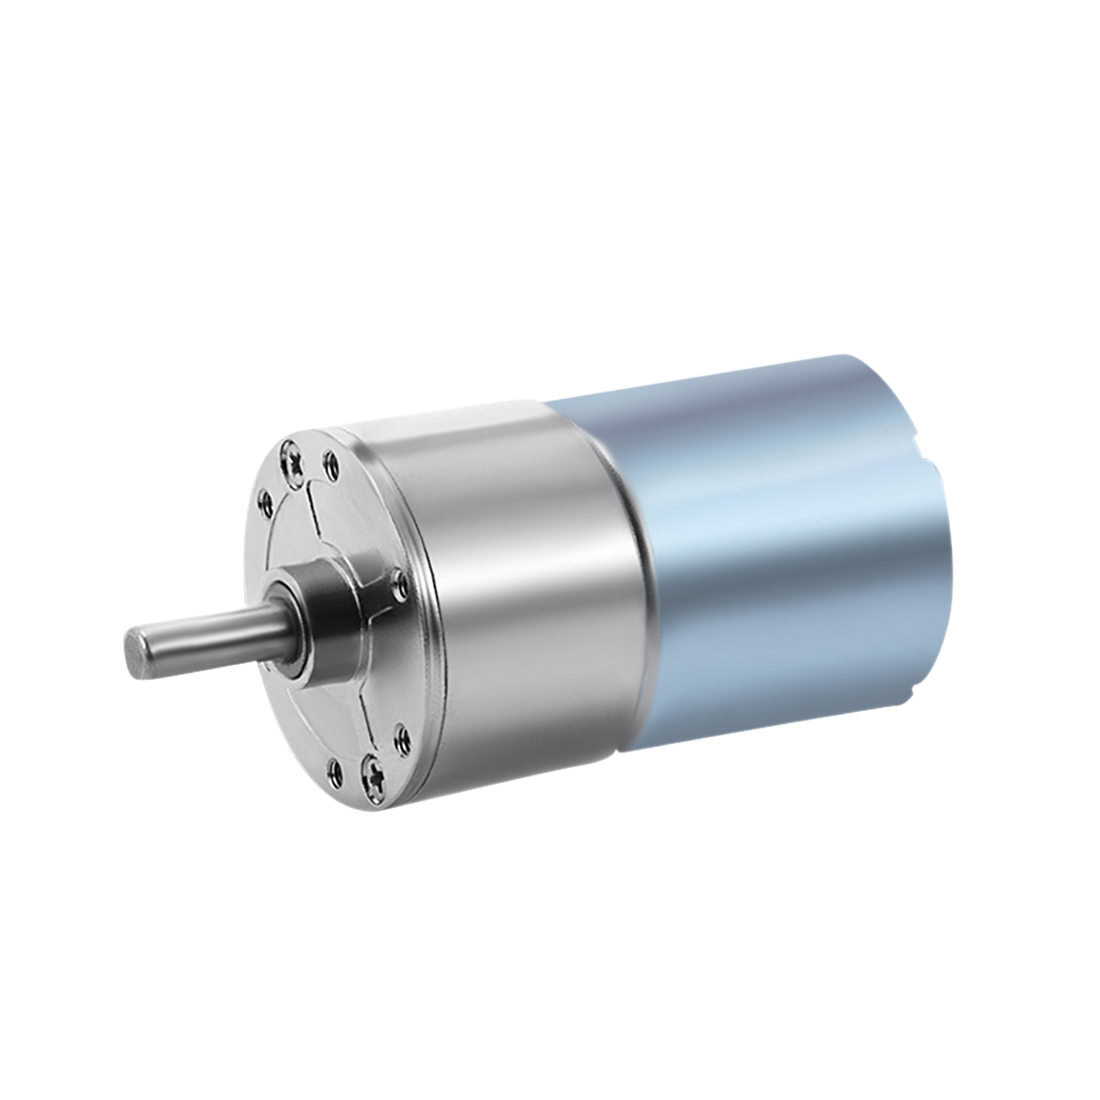 DC 12V 5RPM Micro Gear Box Motor Speed Reduction Electric Gearbox Centric Output Shaft